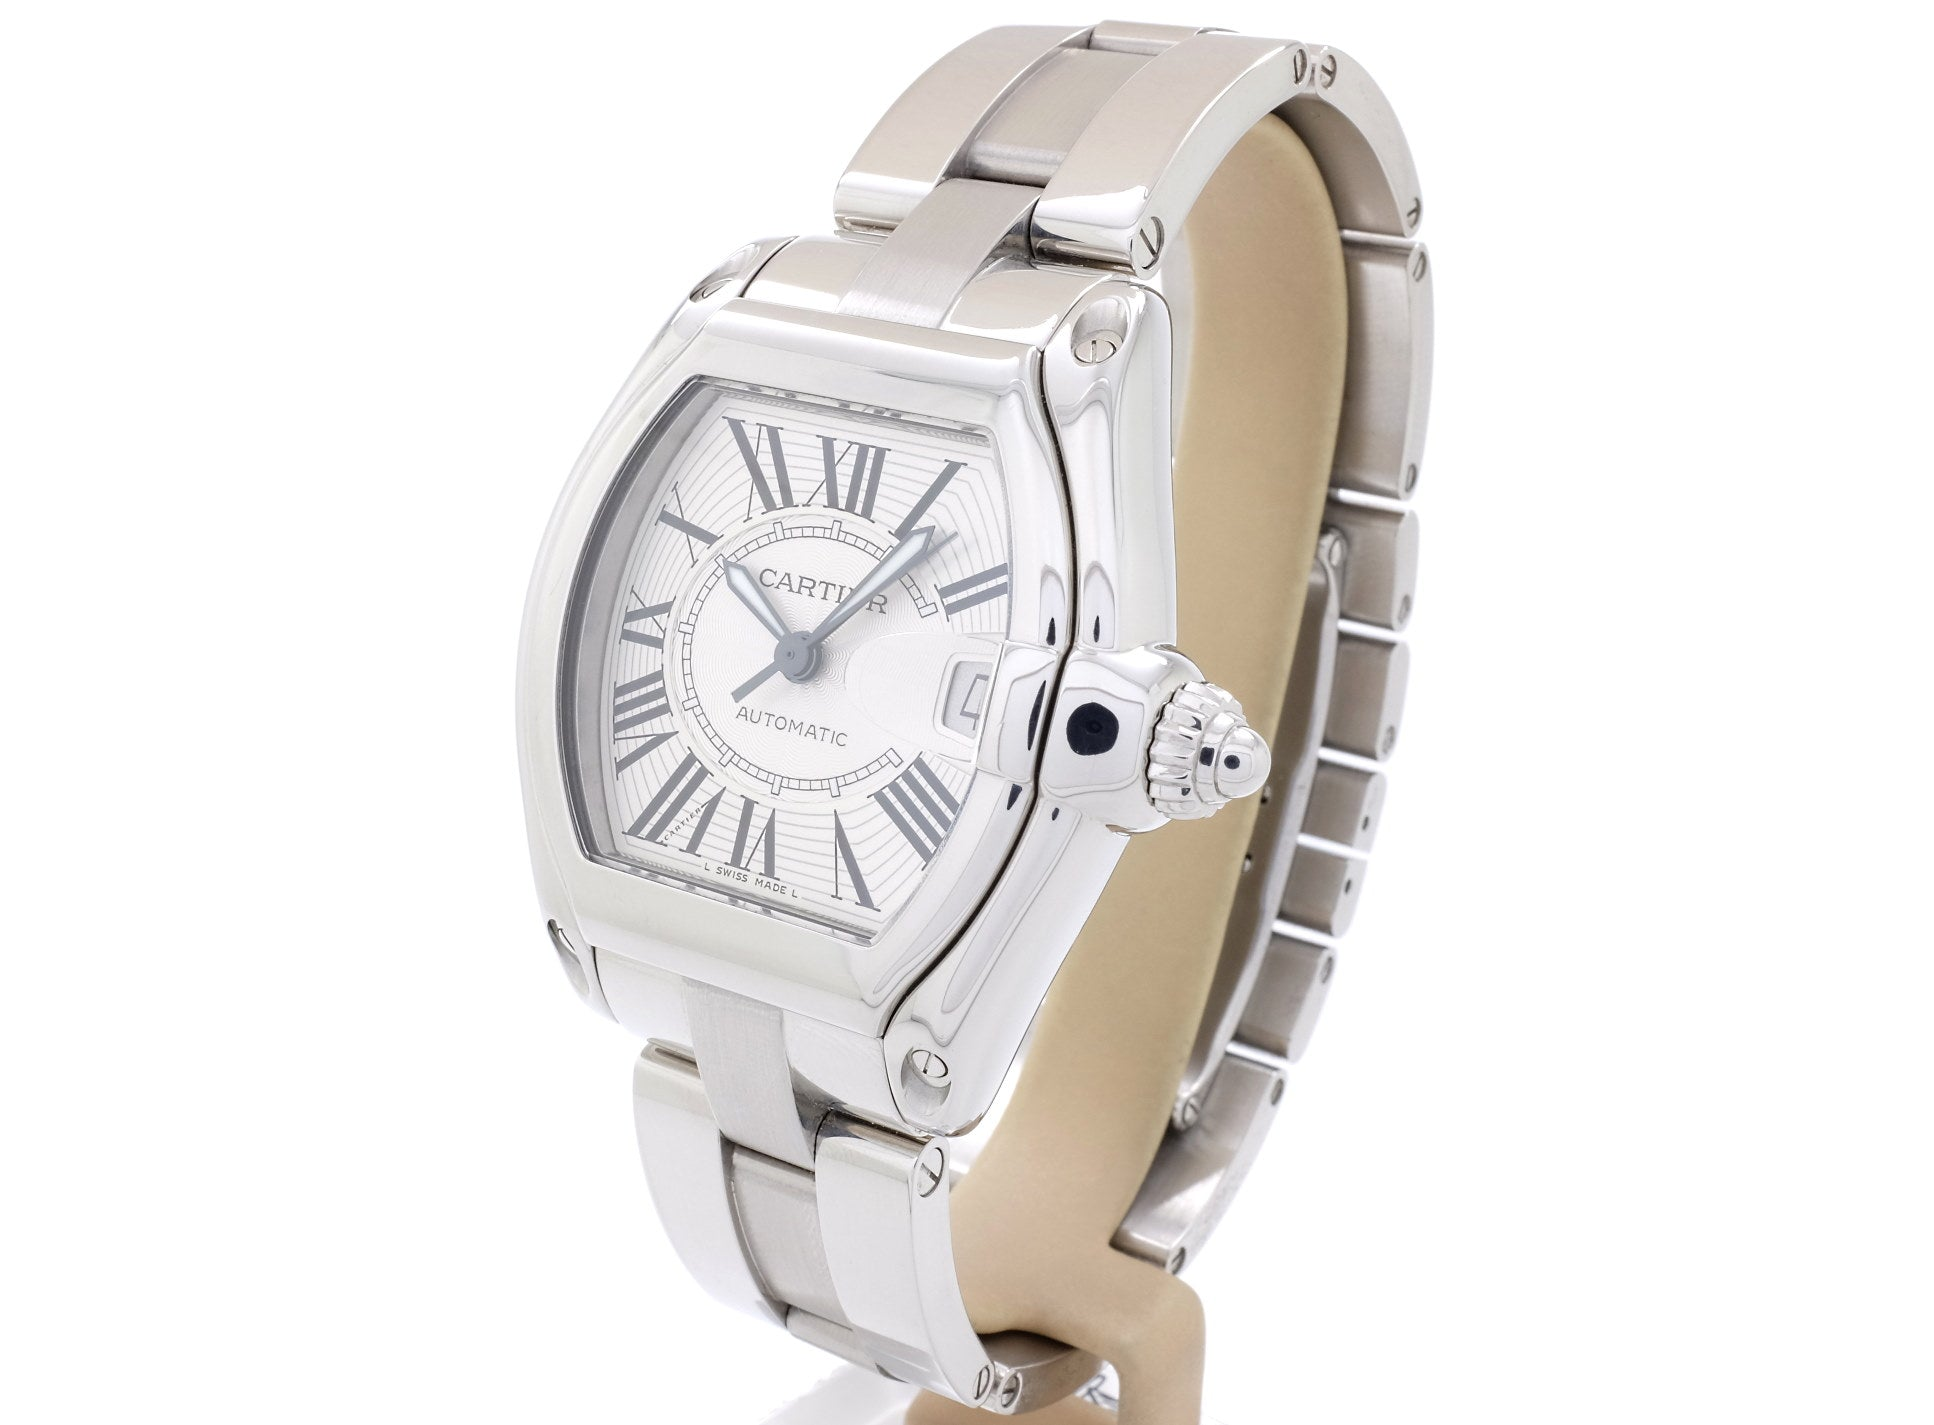 Excellent Condition Cartier ROADSTER model 2510